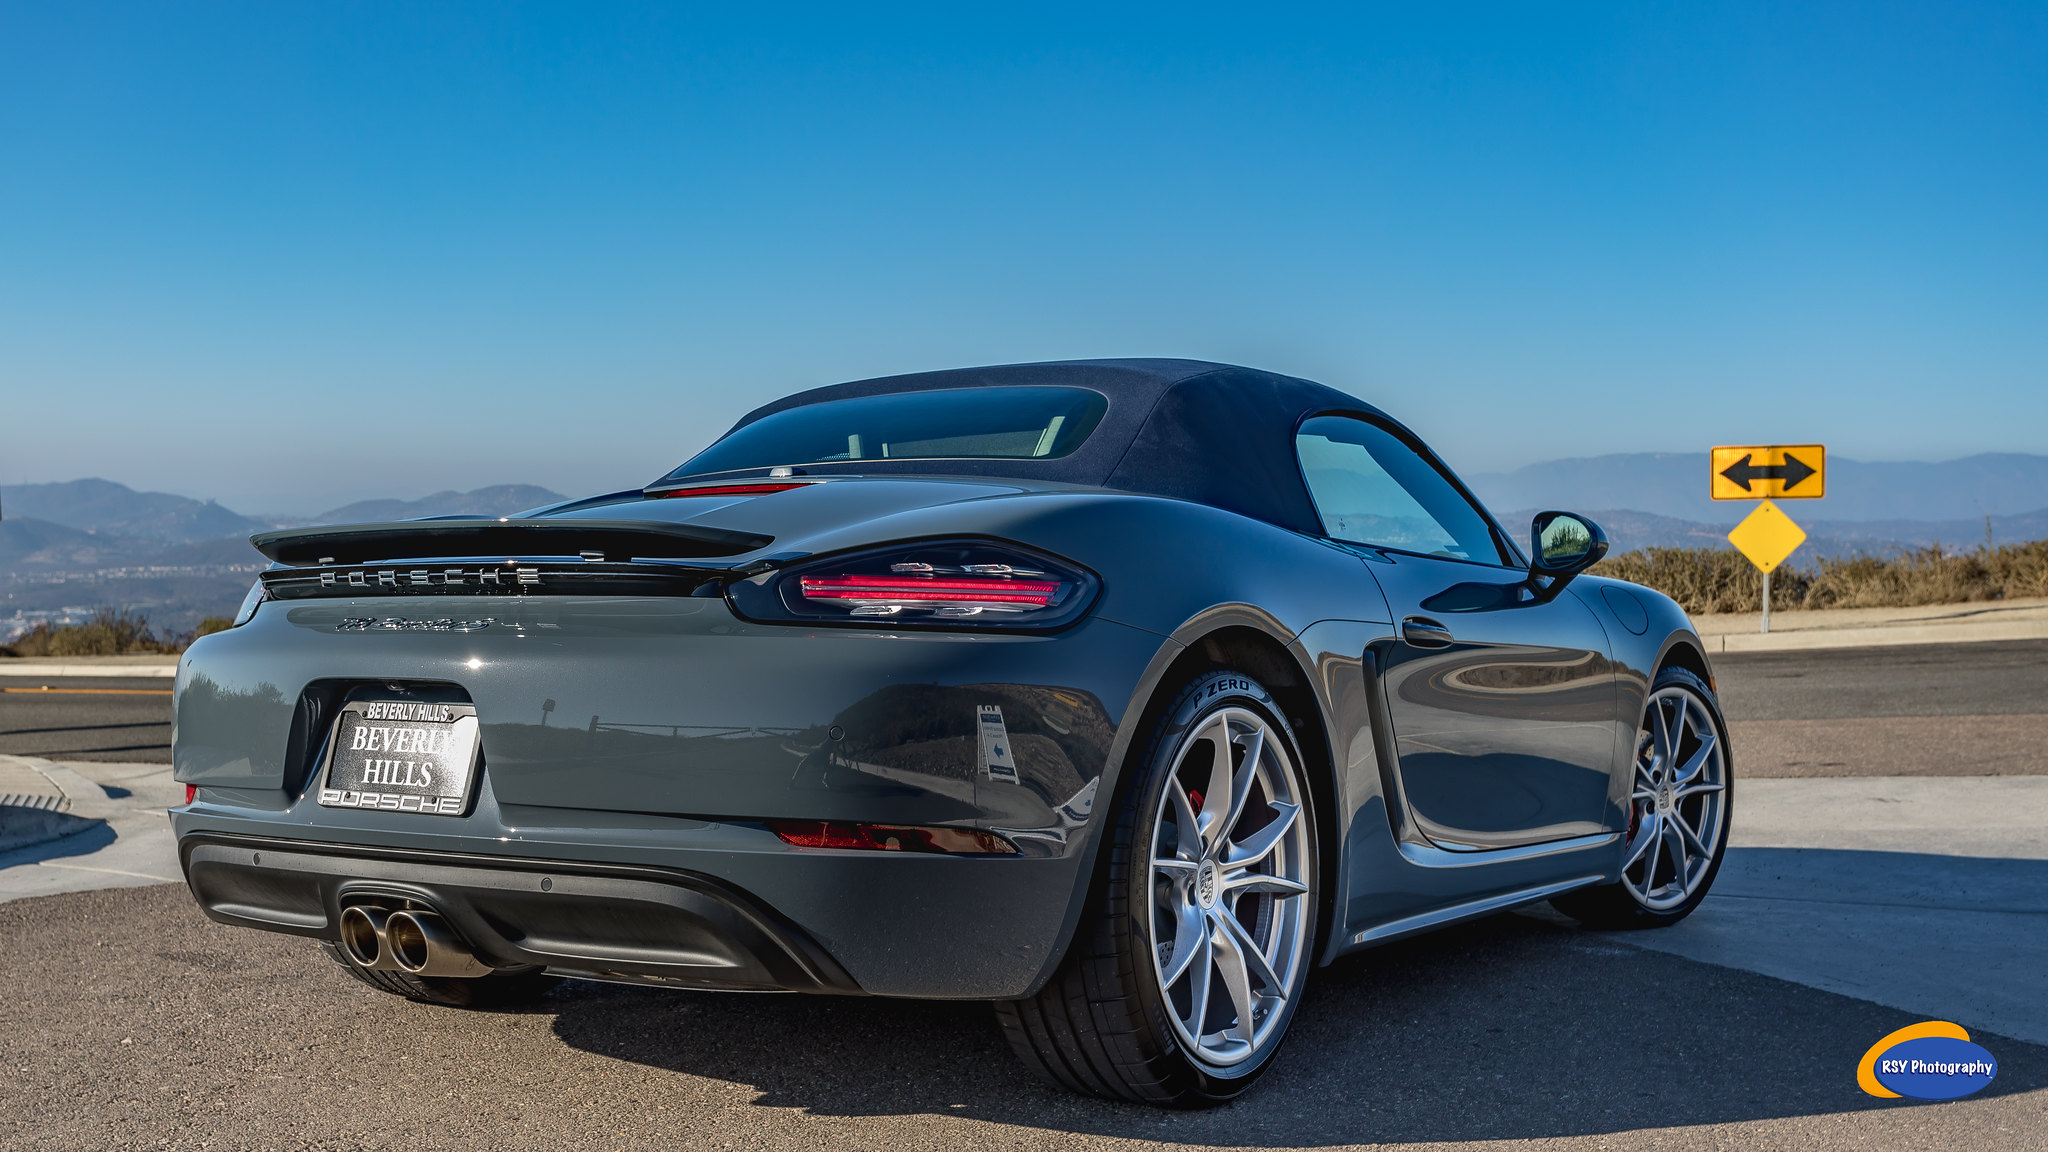 My Graphie Blue 718 Boxster S